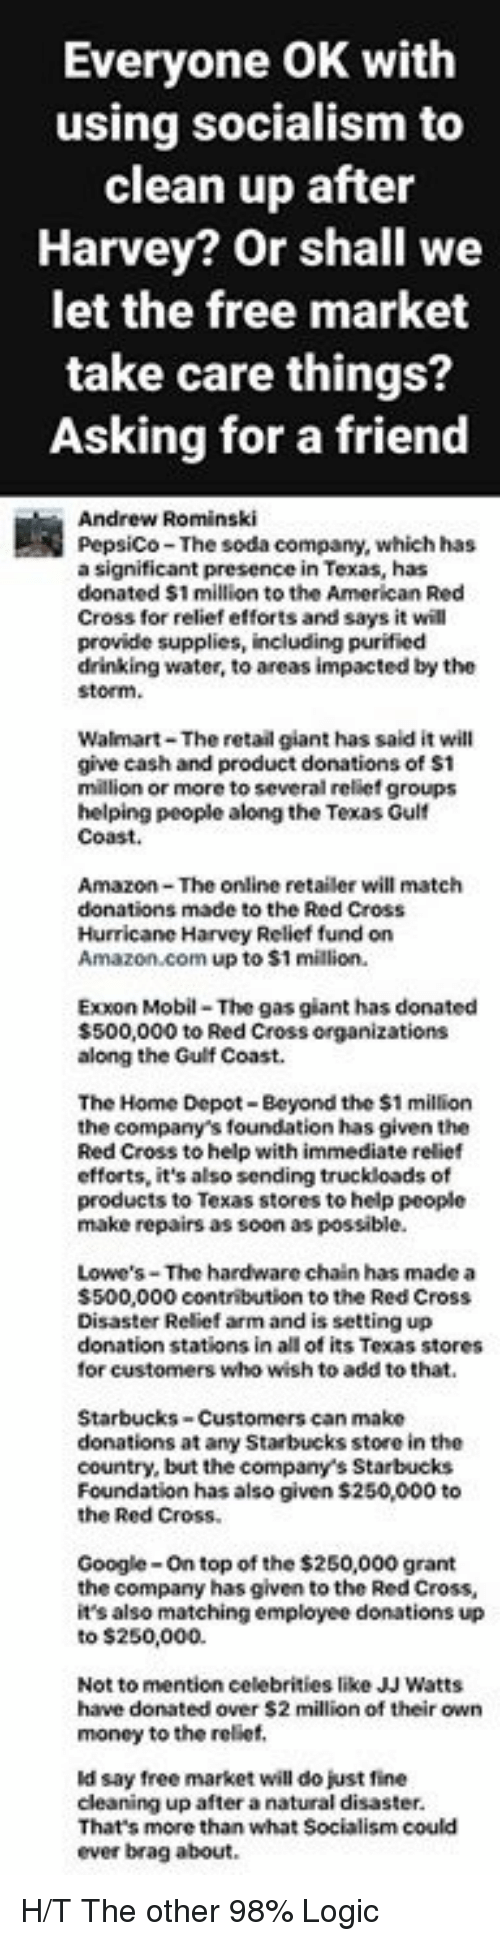 amazone: Everyone OK with  using socialism to  clean up after  Harvey? Or shall we  let the free market  take care things?  Asking for a friend  Andrew Rominski  PepsiCo-The soda company, which has  a significant presence in Texas, has  donated $1 million to the American Red  Cross for relief efforts and says it will  provide supplies, including purified  豳;  king water, to areas impacted by the  Walmart The retail giant has said it will  e cash and product donations of $1  million or more to several reliet groups  lping people along the Texas Gult  Coast.  Amazon-The online retailer will match  donations made to the Red Cross  Hurricane Harvey Relief fund on  Amazon.com up to $1 million.  xxon Mobil The gas giant has donated  $500,000 to Red Cross organizations  along the Gulf Coast  the company's foundation has given the  Red Cross to help with immediate relief  efforts, it's also sending truckloads o  roducts to Texas stores to help people  ake repairs as soon as possible  Lowe's-The hardware chain has made a  $500,000 contribution to the Red Cross  Disaster Relief arm and is setting up  nation stations in all of its Texas stores  for customers who wish to add to that.  tarbucks-Customers can make  donations at any Starbucks store in the  country, but the company's Starbucks  Foundation has also given $250,000 to  the Red Cross  Google-On top of the $250,000 grant  he company has given to the Red Cross,  it's also matching employee donations up  to $250,000.  ot to mention celebrities like JJ Watts  have donated over $2 million of their own  money to the relief,  say free market will do just fine  cleaning up after a natural disaster.  That's more than what Socialism could  ever brag about H/T The other 98% Logic